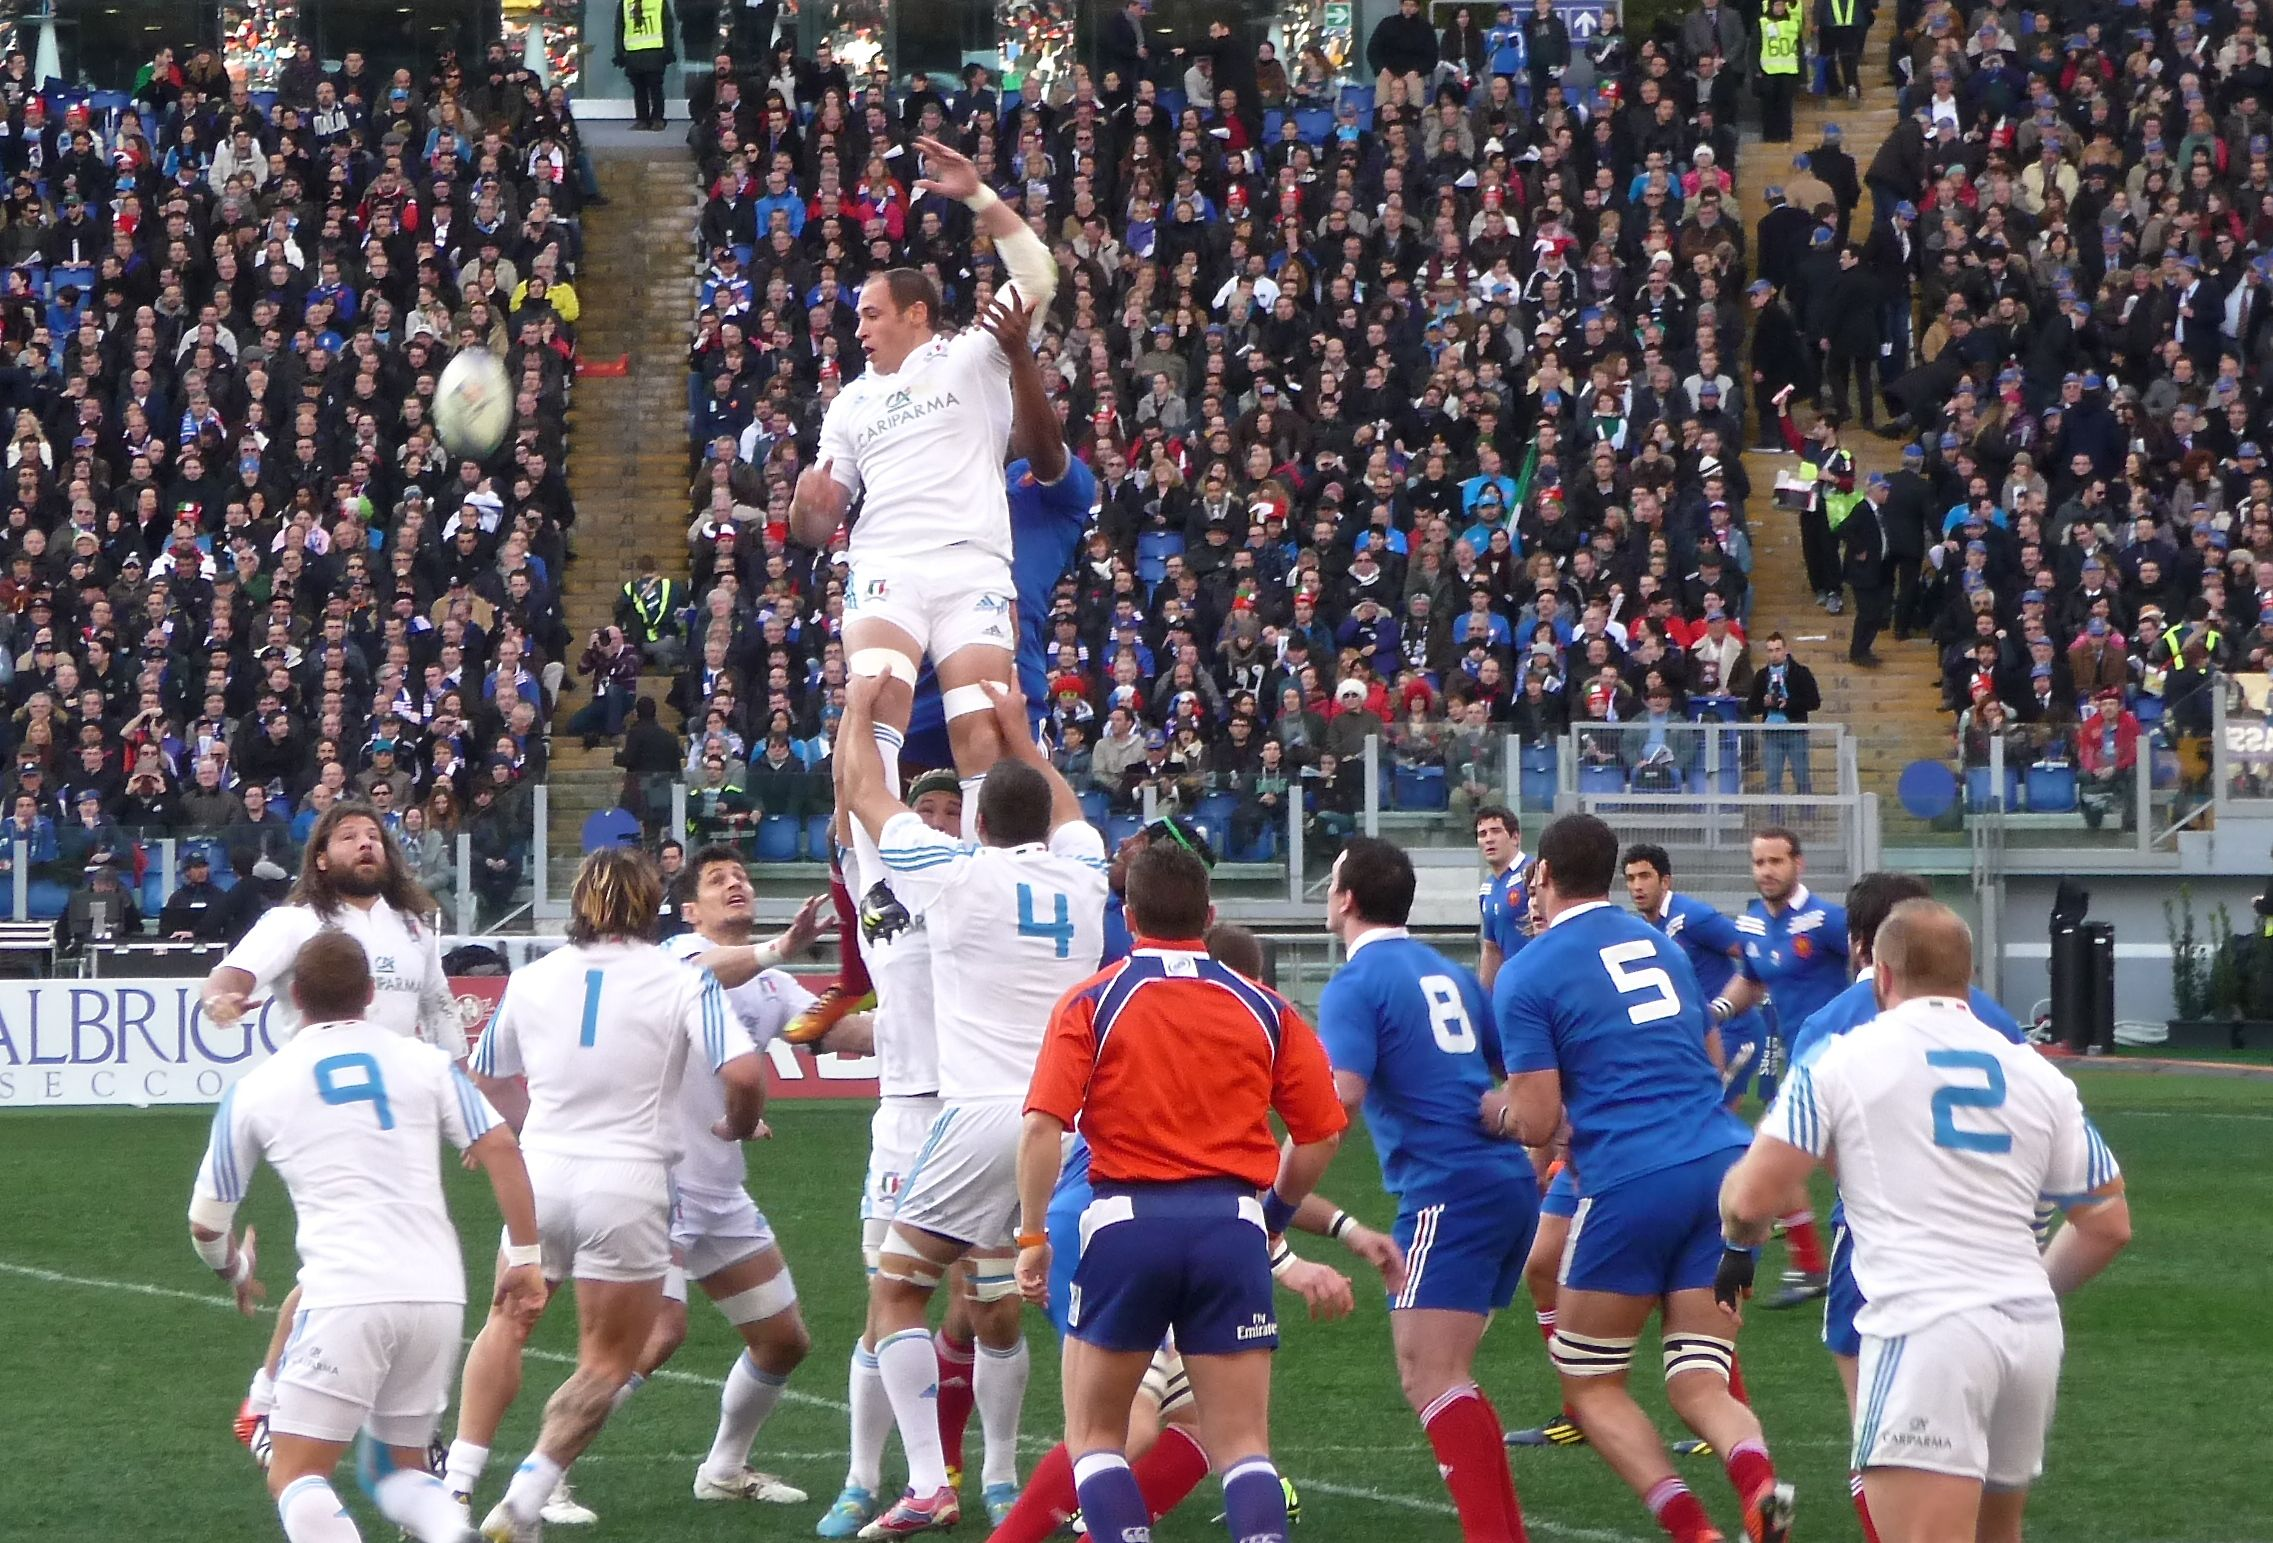 Captain Sergio Parese triumphs over the French pack at a line-out, February 2013